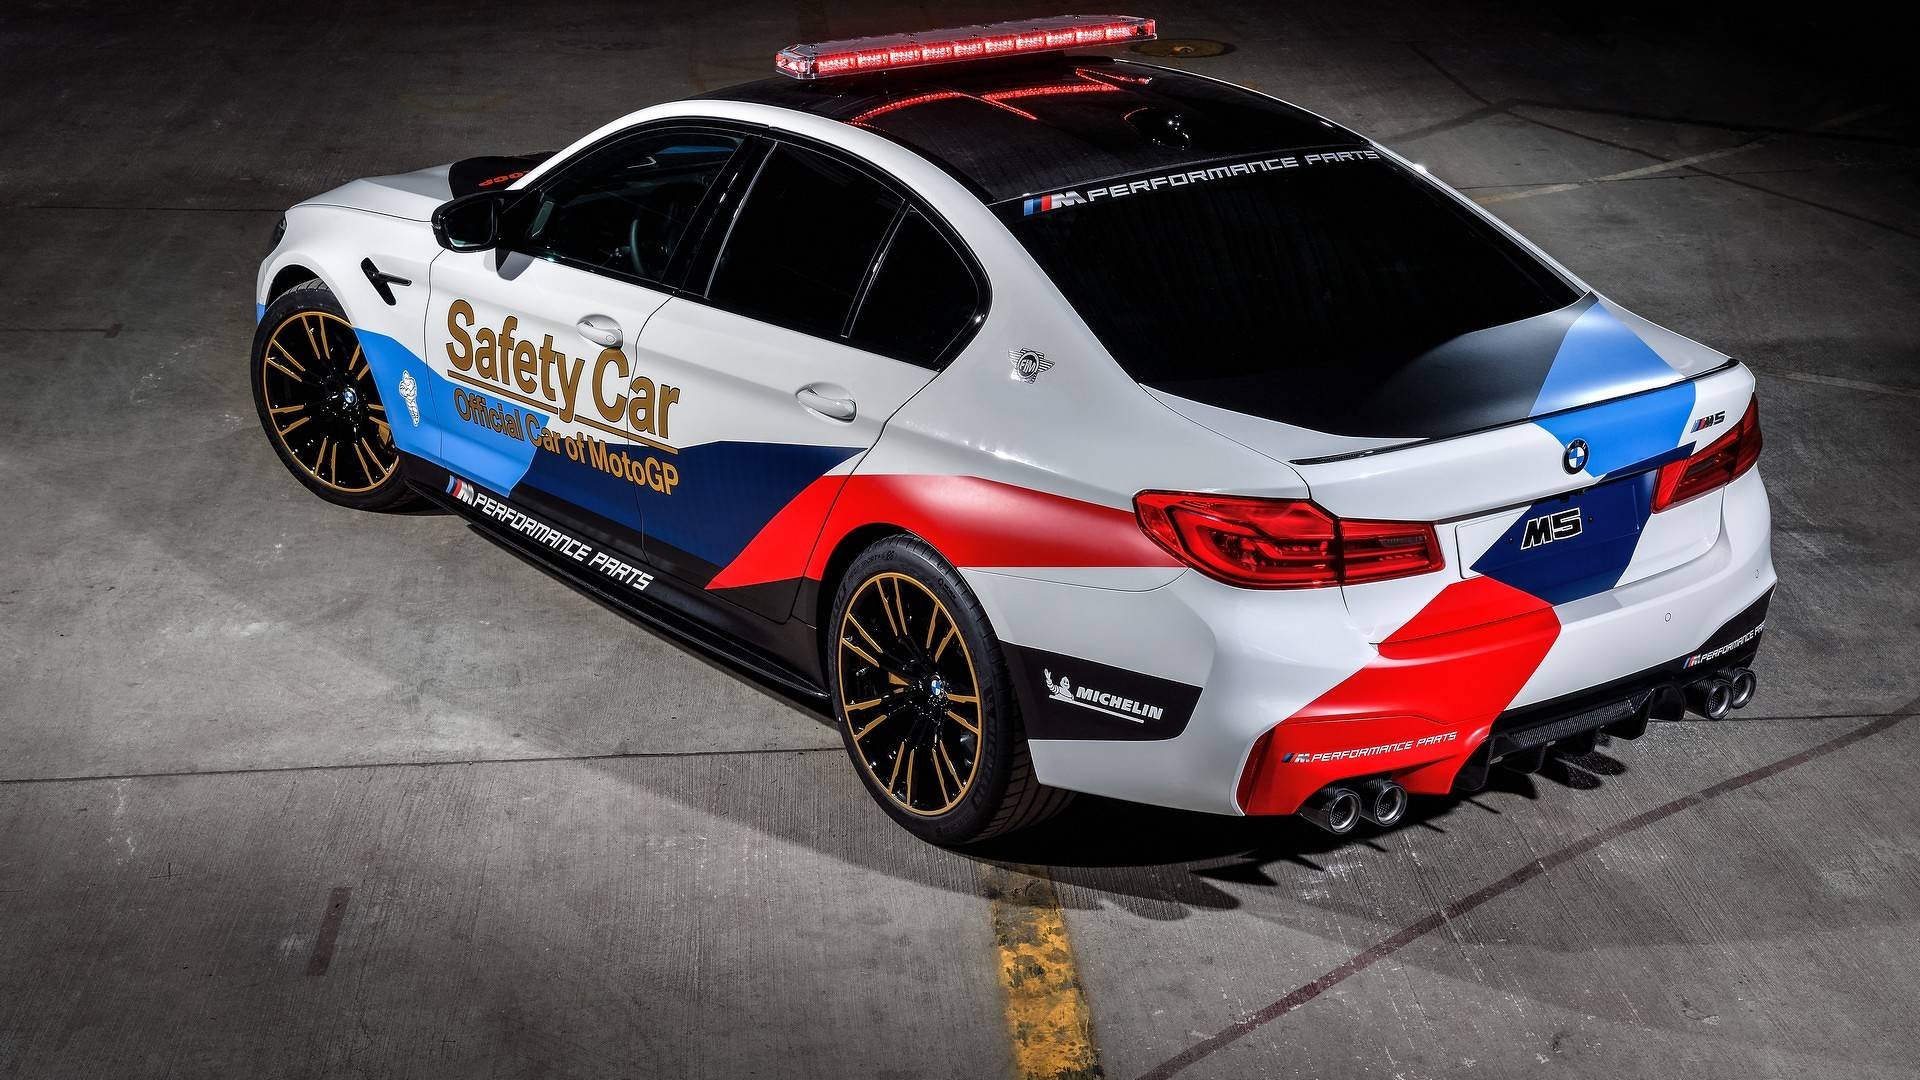 bmw-m5-motogp-safety-car (22)